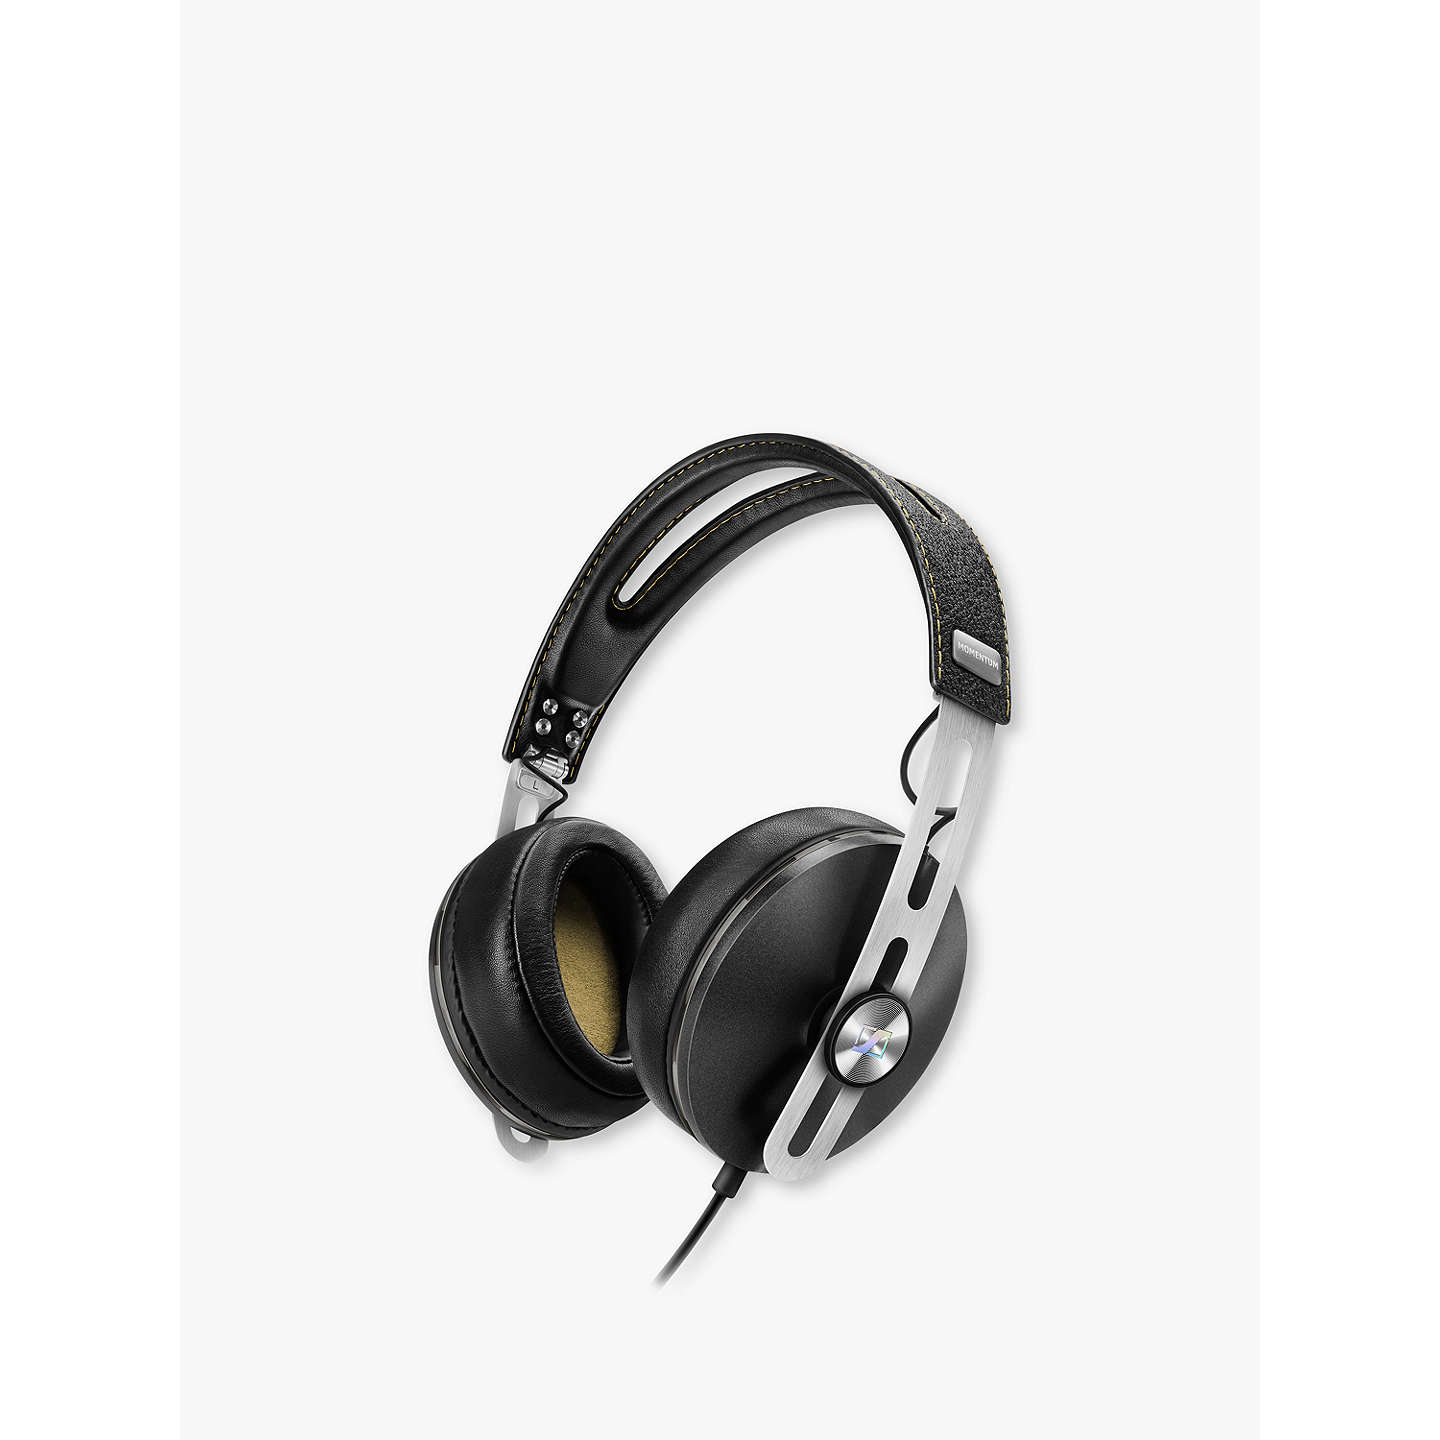 BuySennheiser Momentum 2.0i Full Size Headphones with Mic/remote for Apple Devices, Black Online at johnlewis.com